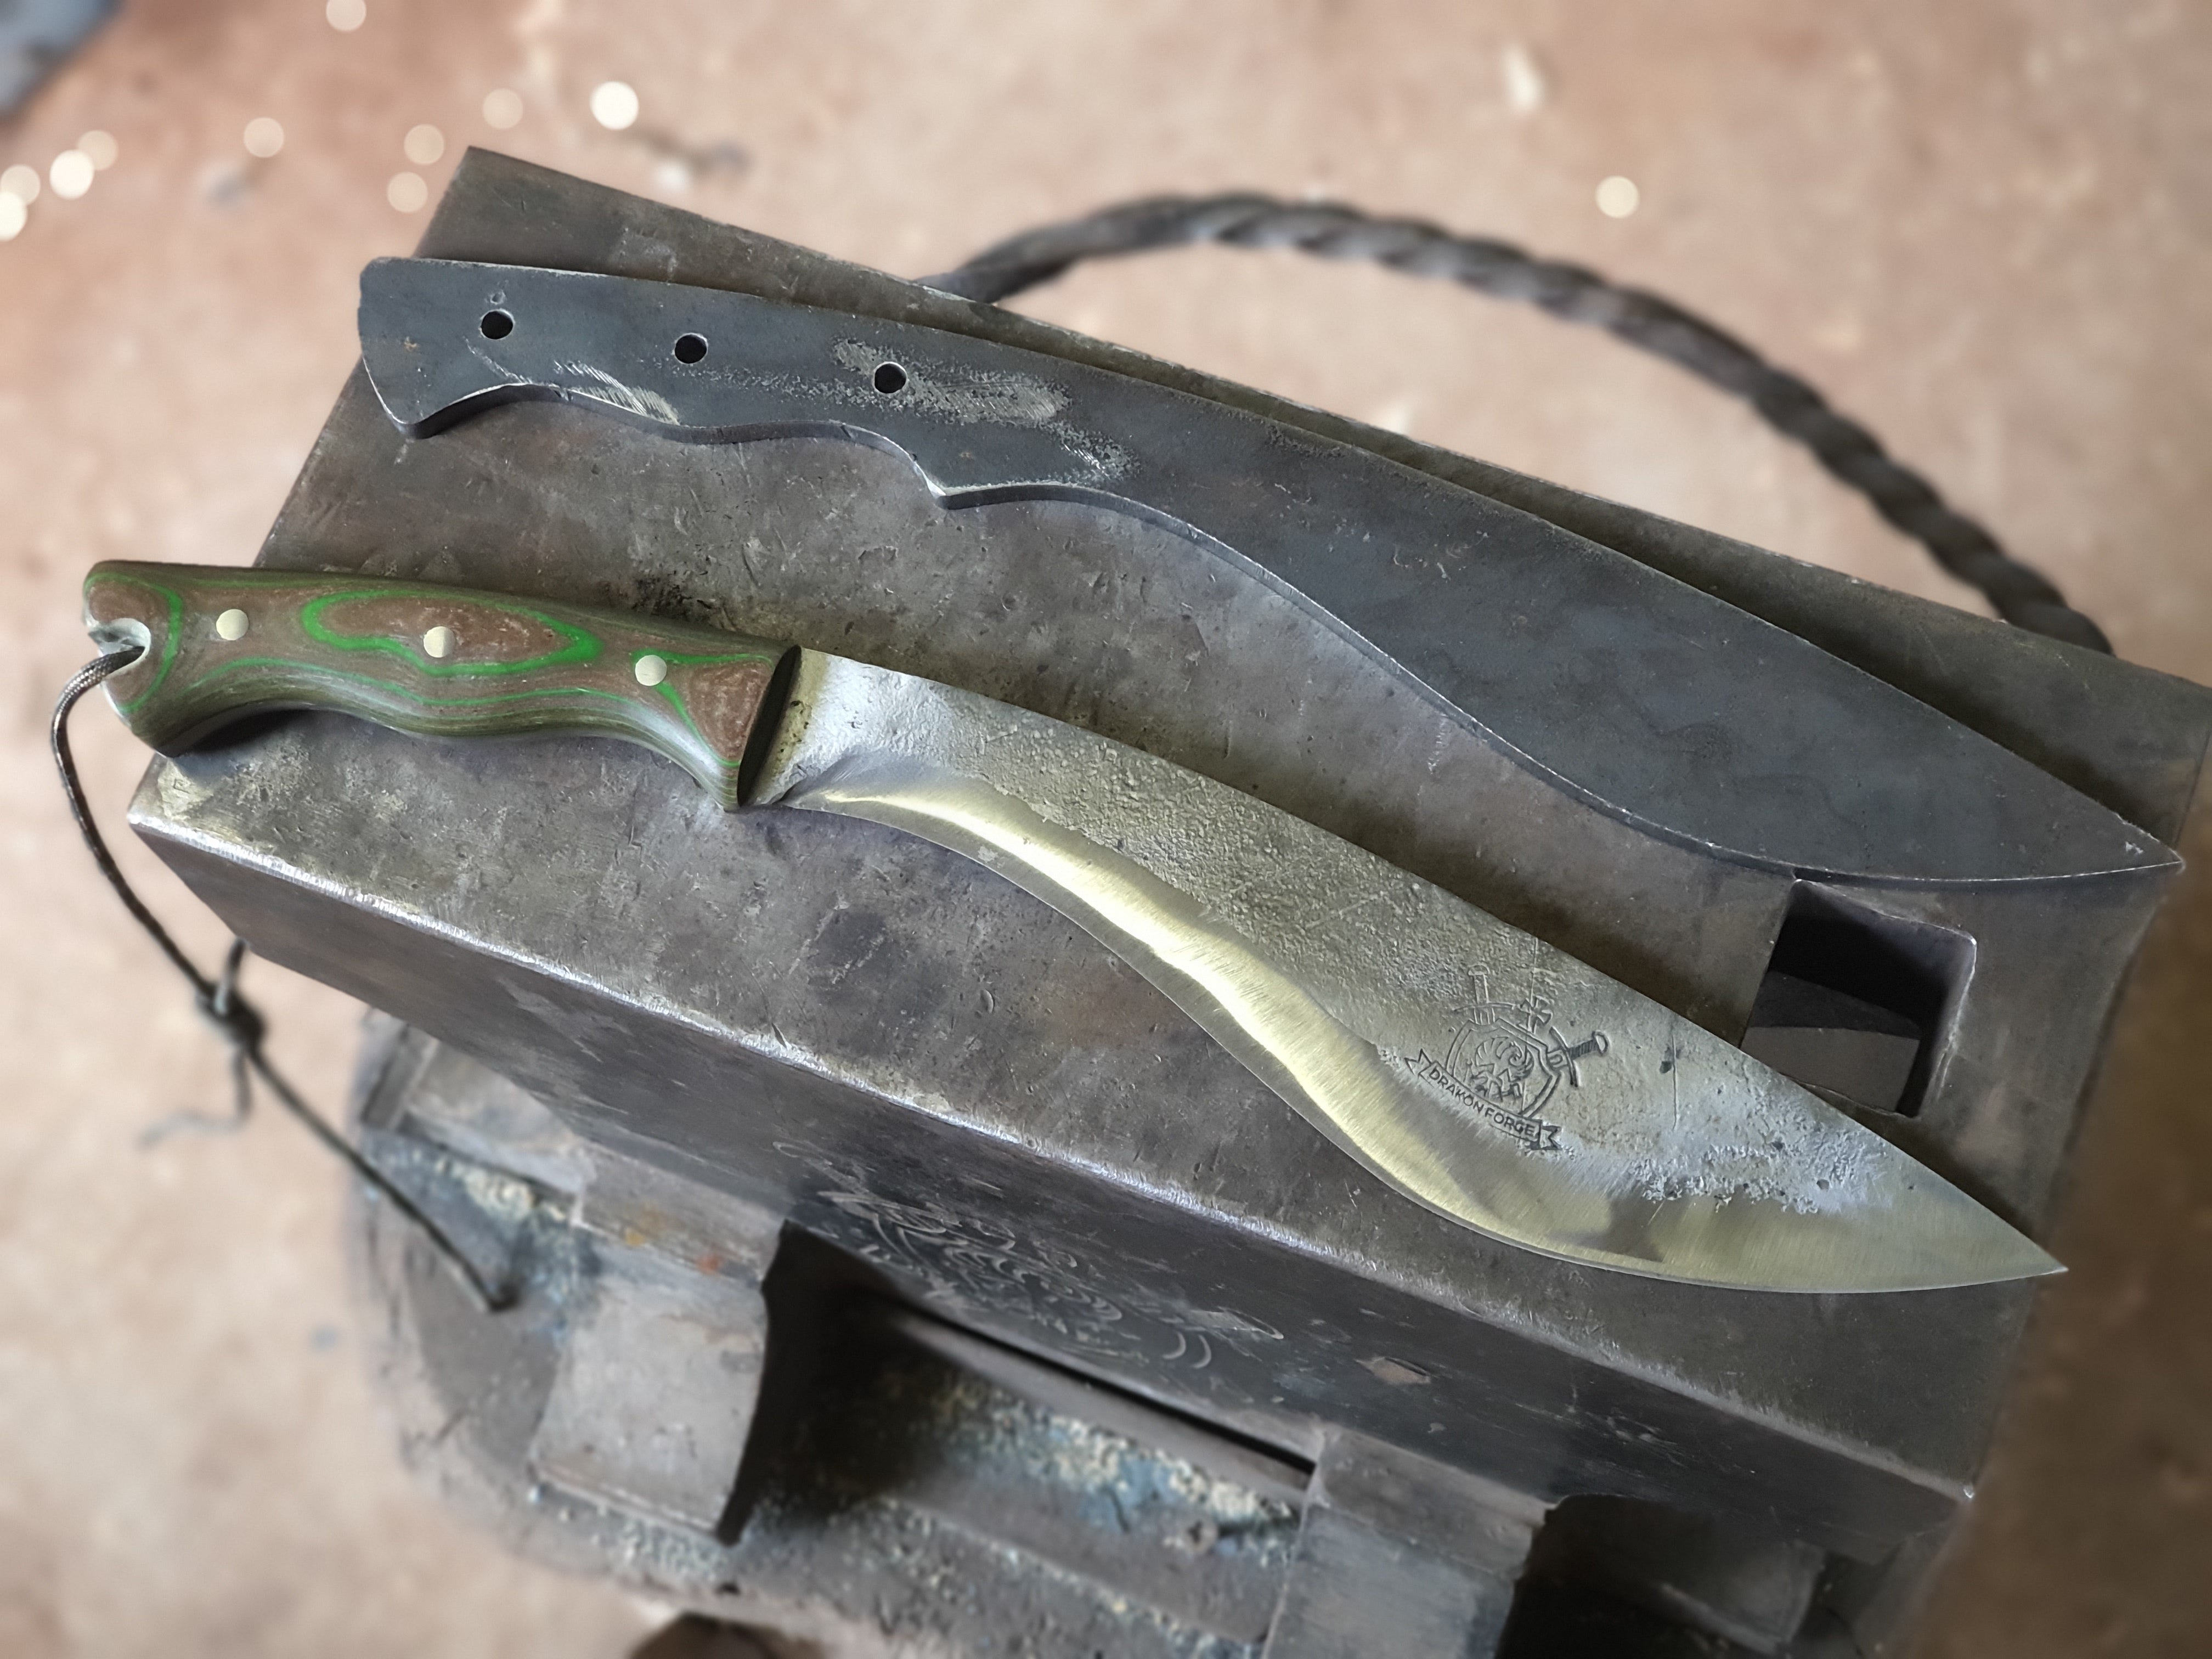 Kukri knife blank